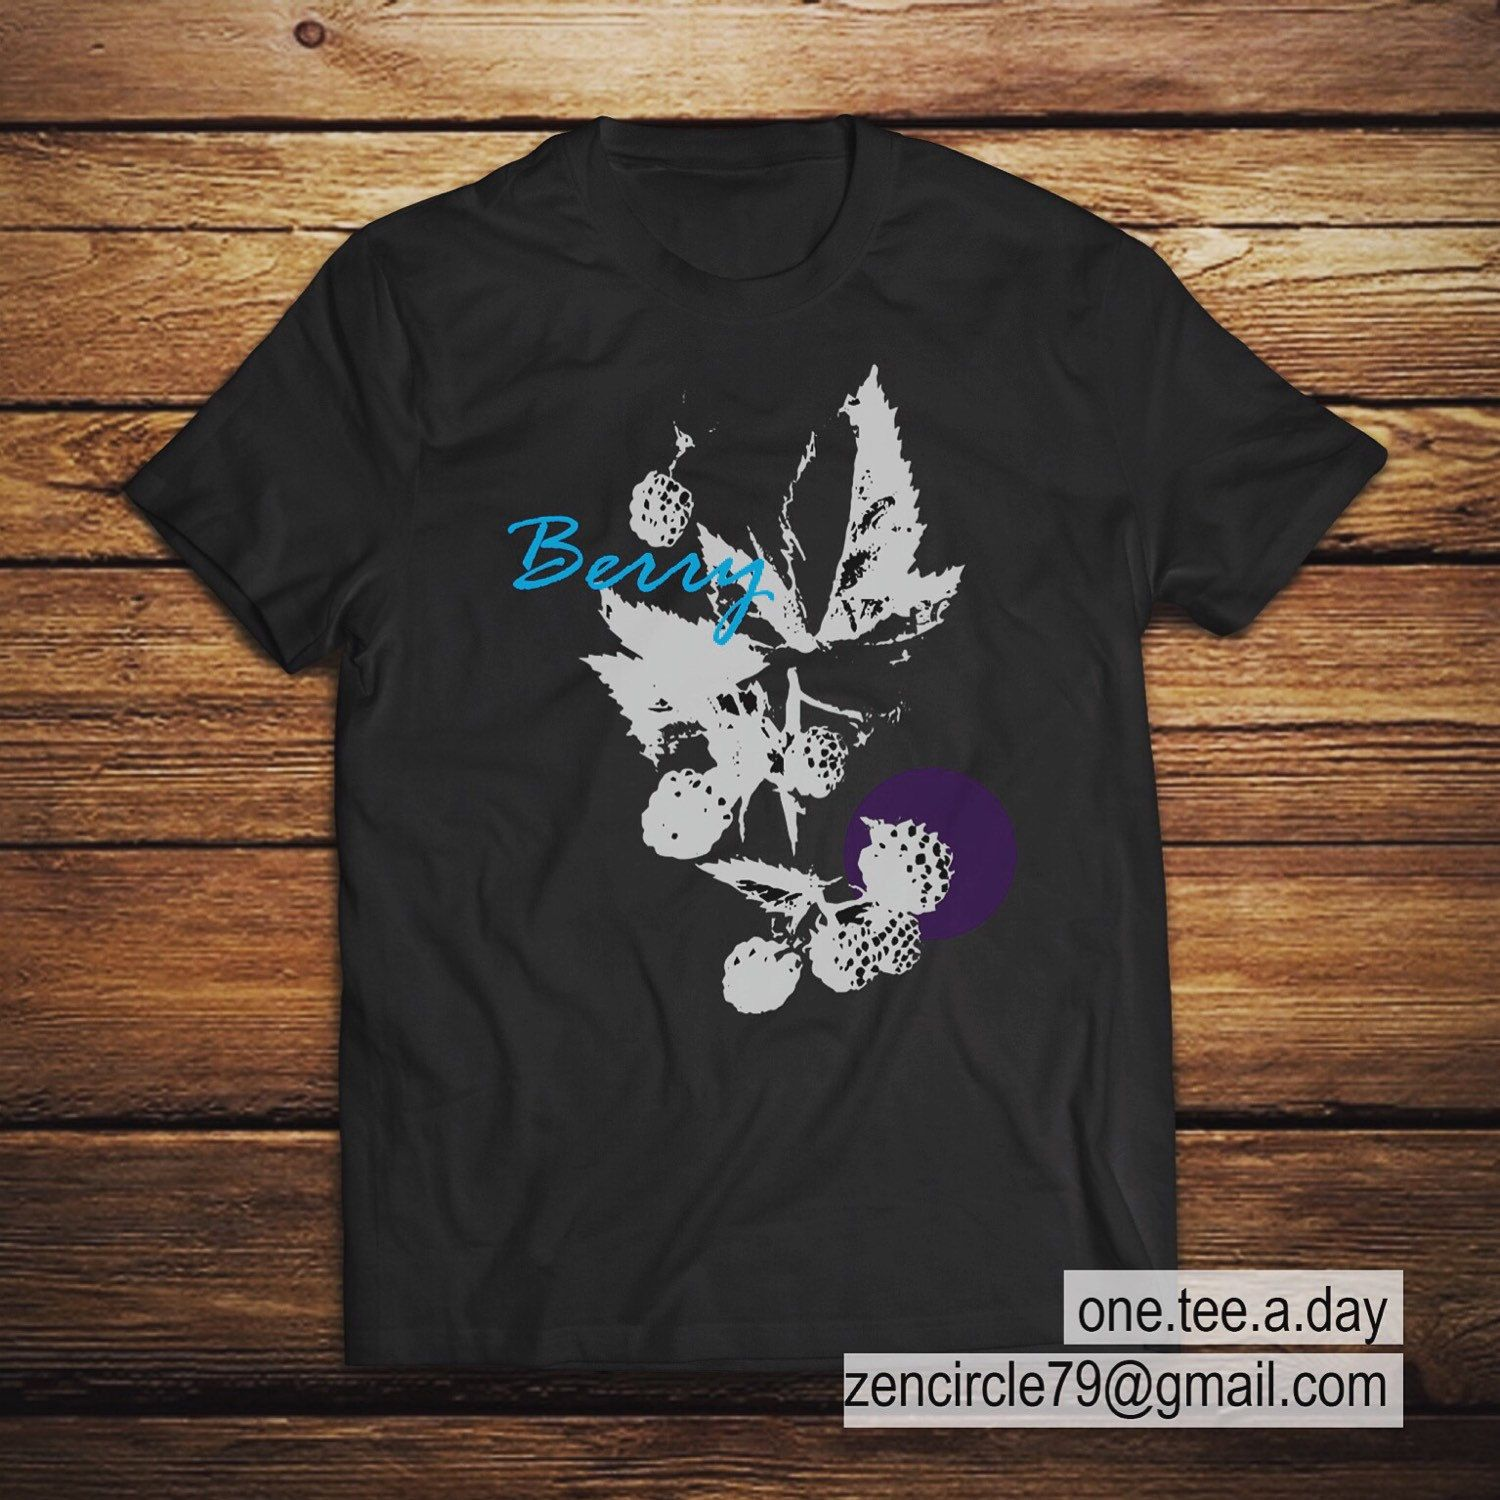 #winter #berry New tshirt design. Have a great day